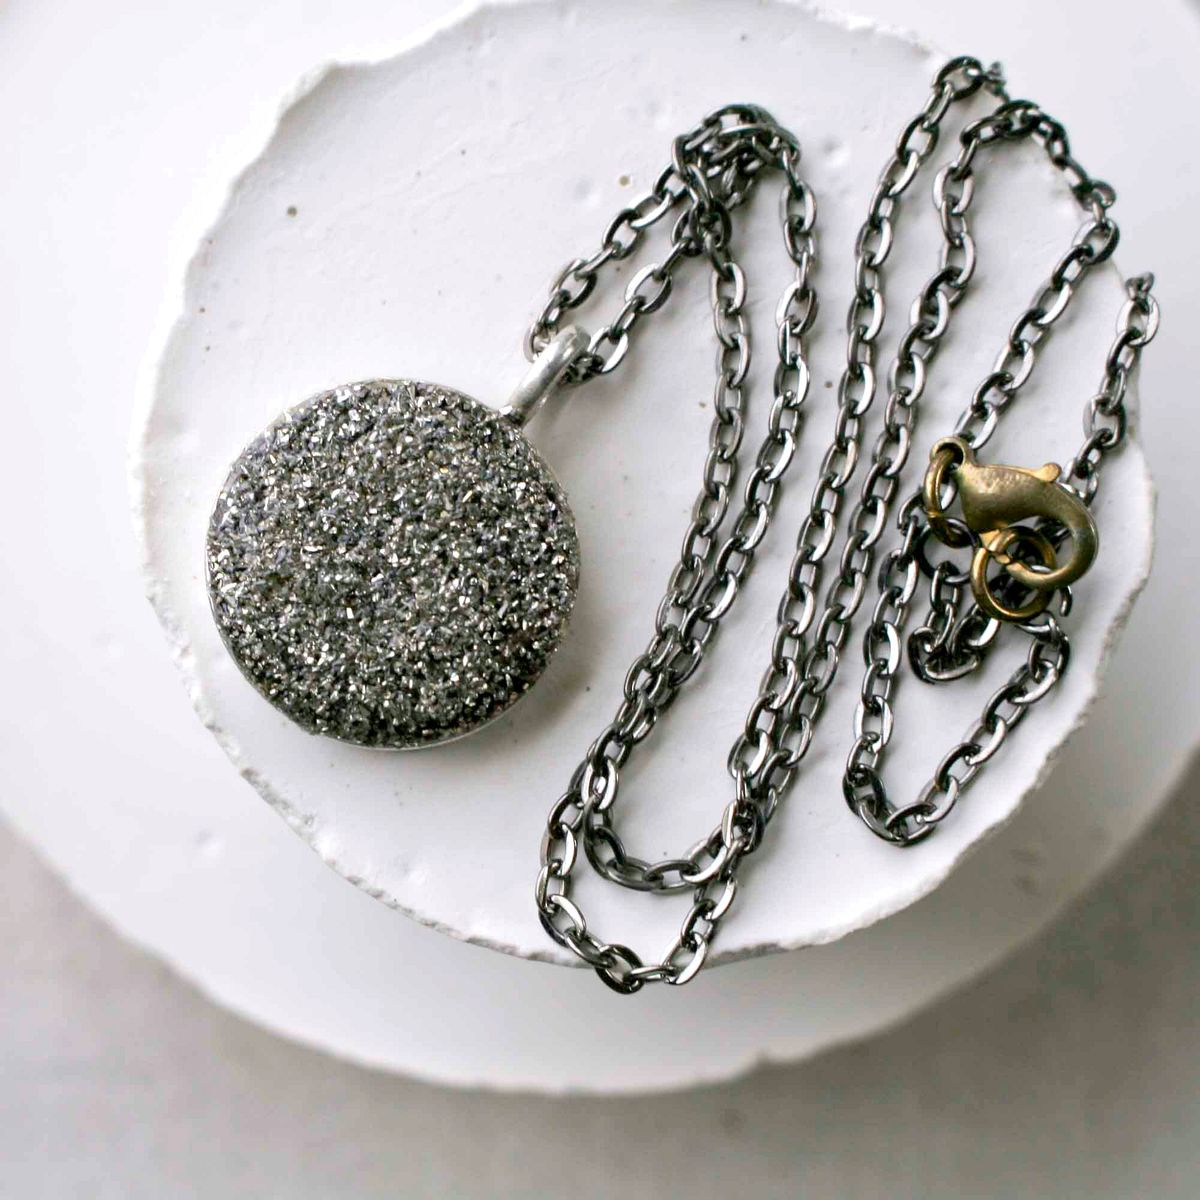 Rustic and Round Silver Glass Glitter and Pyrite Charm Pendant Necklace - product image